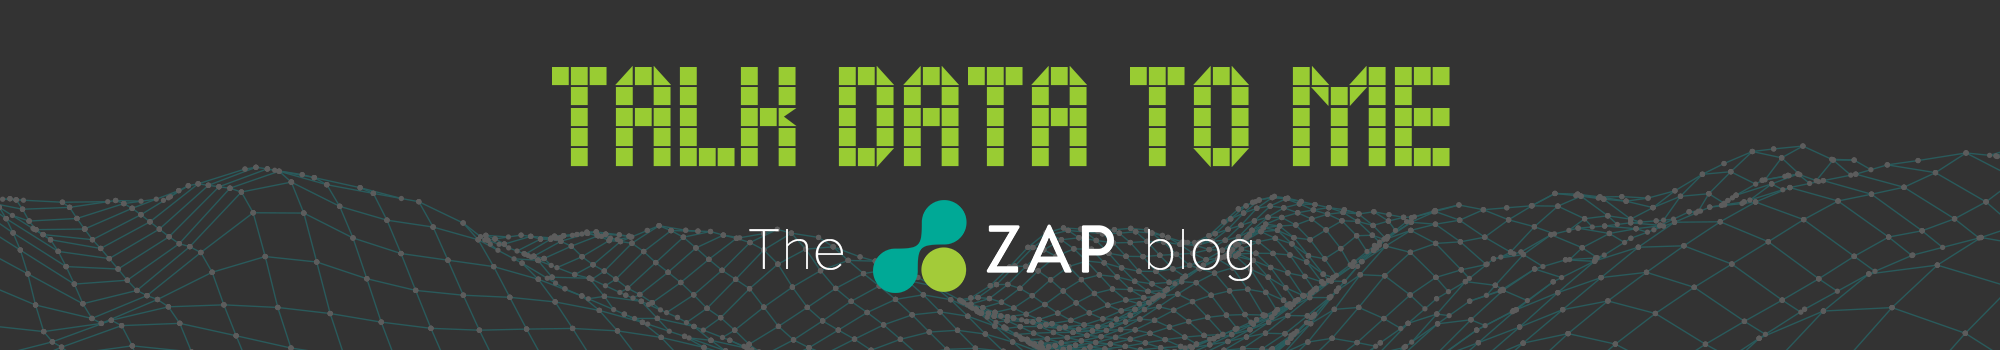 Data Management, BI Analytics, ERP Reporting & Data Warehousing Blog | Talk Data to Me by ZAP